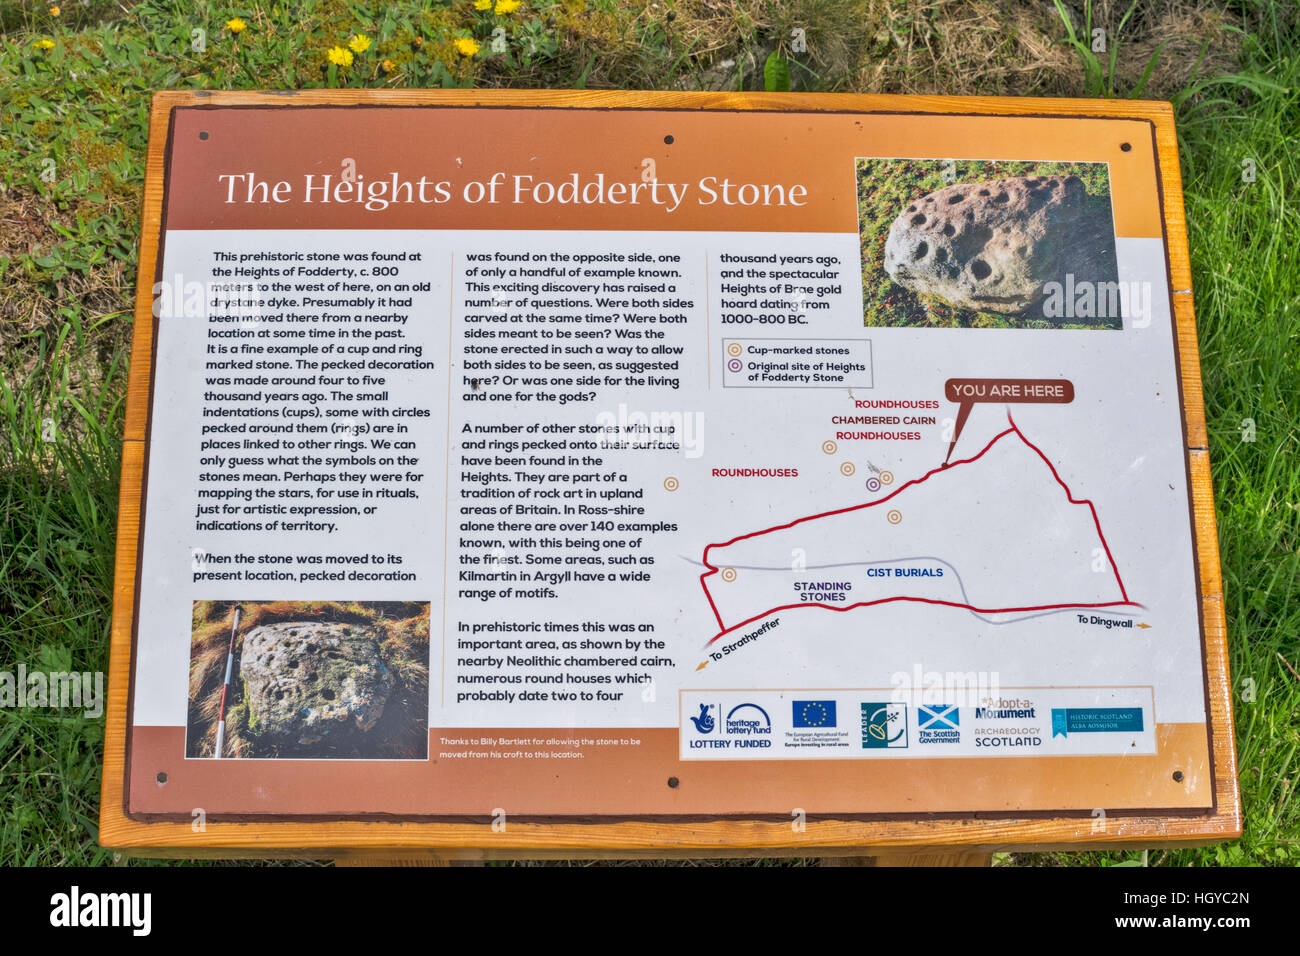 THE HEIGHTS OF FODDERTY STONE NOTICE BOARD LOCATED AT THE GUNN MEMORIAL STRATHPEFFER Stock Photo